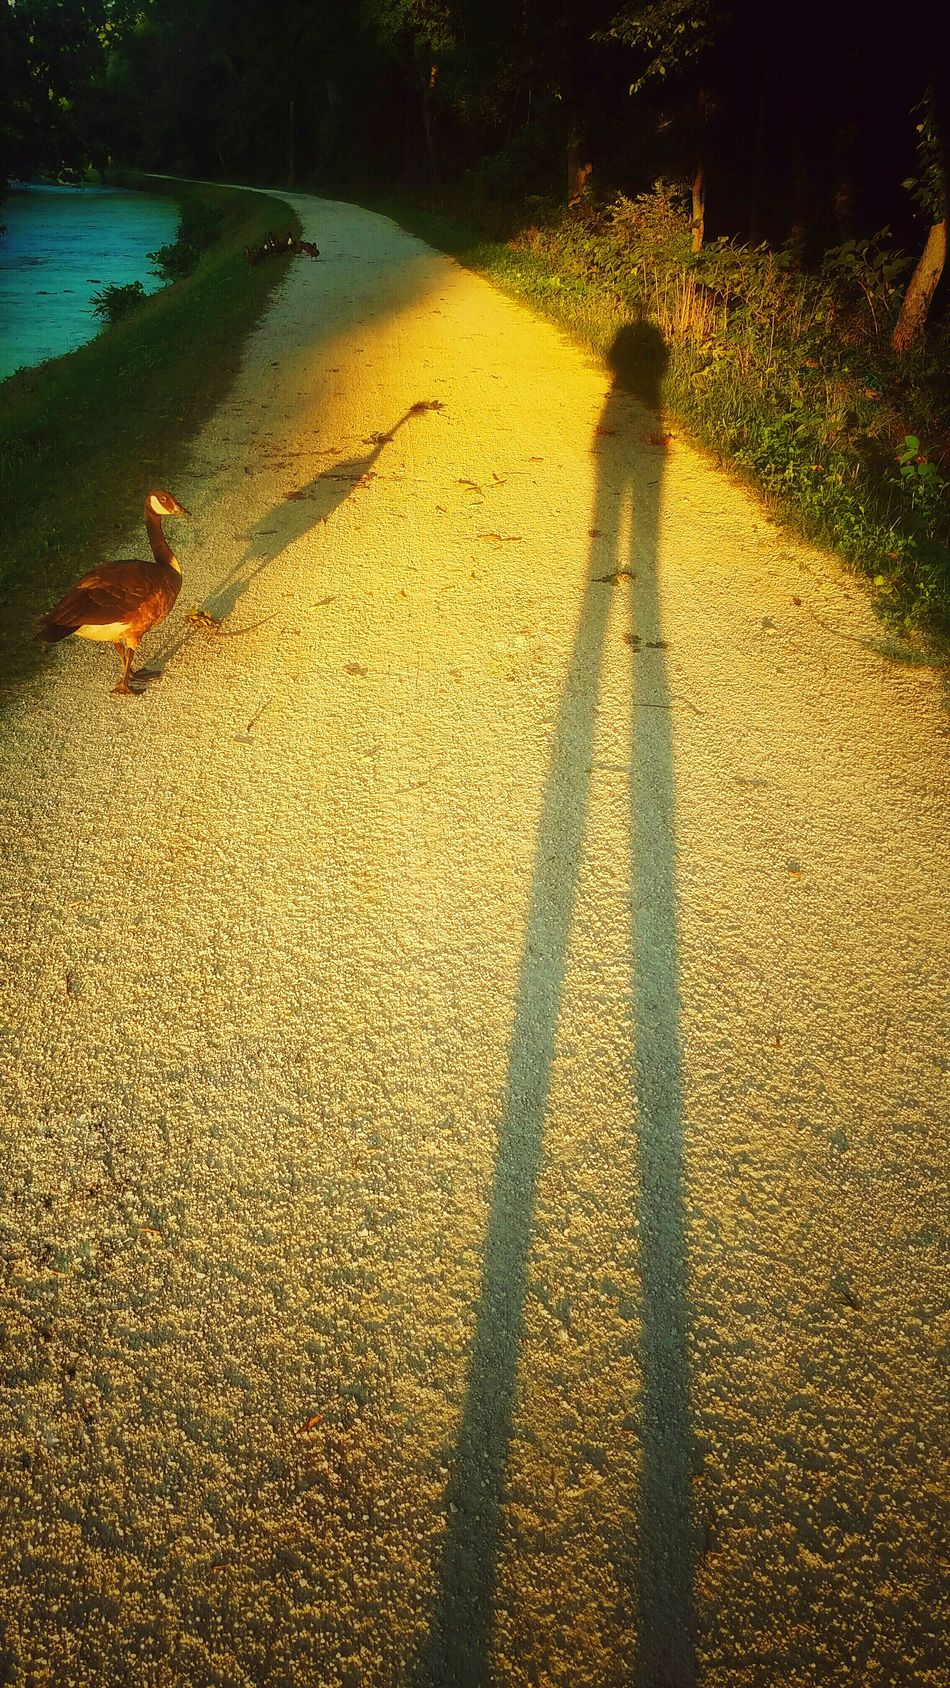 Walking Trail Outdoors Path Shadows Wildlife Goose Long Shadows Golden Hour Golden Moments 43 Cast A Shadow Evening Sun From My Point Of View From My Eyes To Yours Letgodhandleit Evening Nature Beauty In Nature Standing Tall Natureporn Nature Porn Person Shadow Animal Animal Shadows EyeEm Diversity TCPM